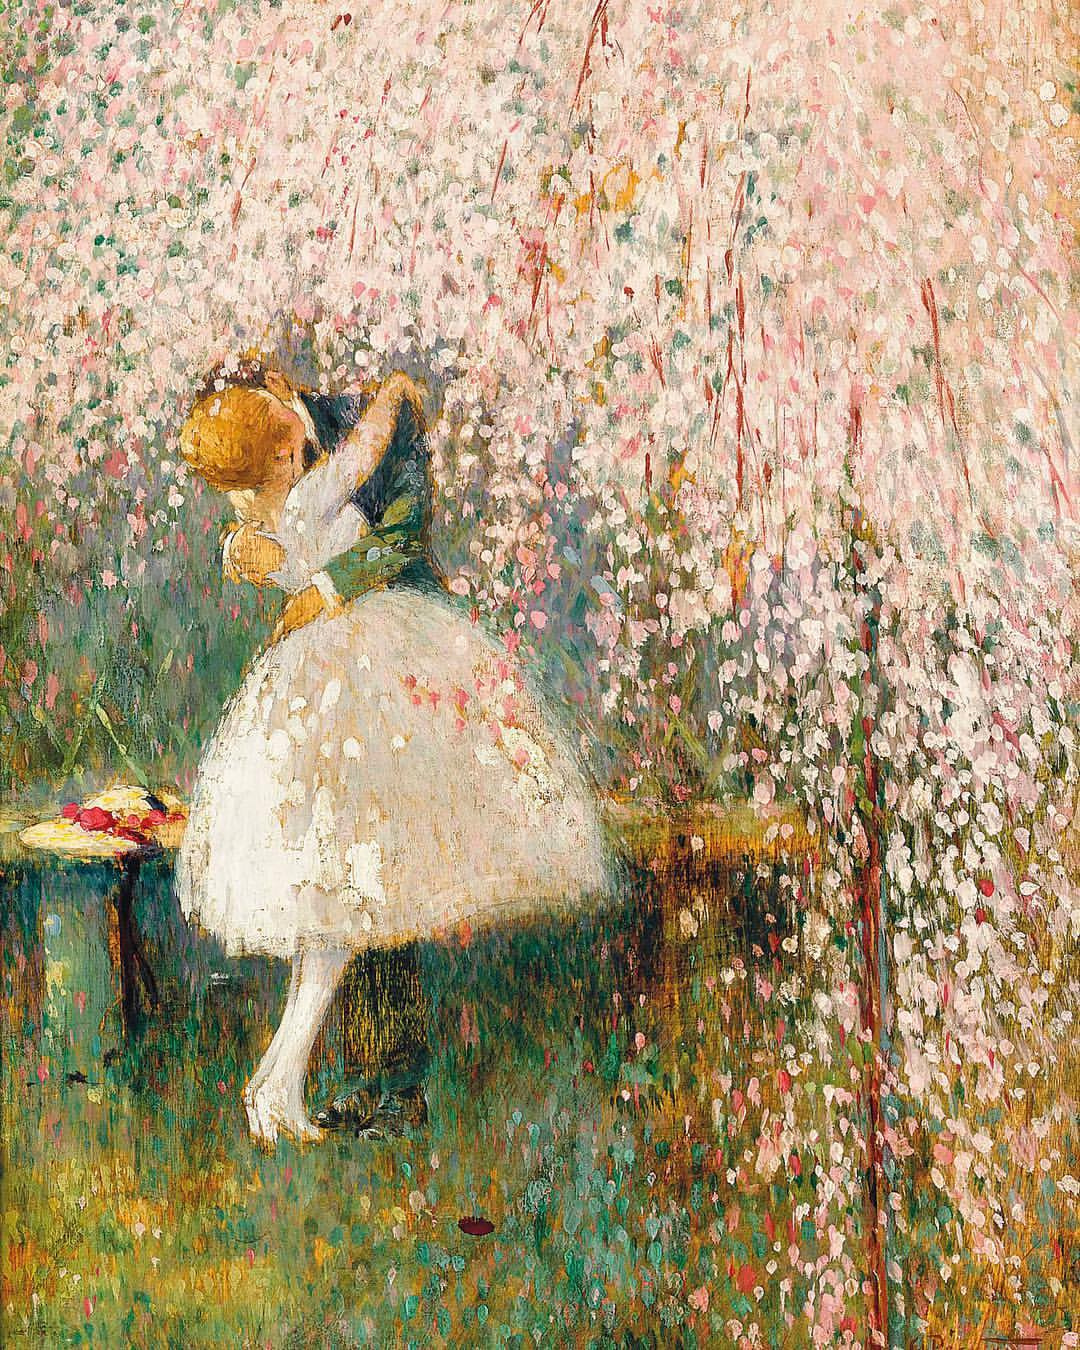 Georges Picard. A novel under a tree in bloom.